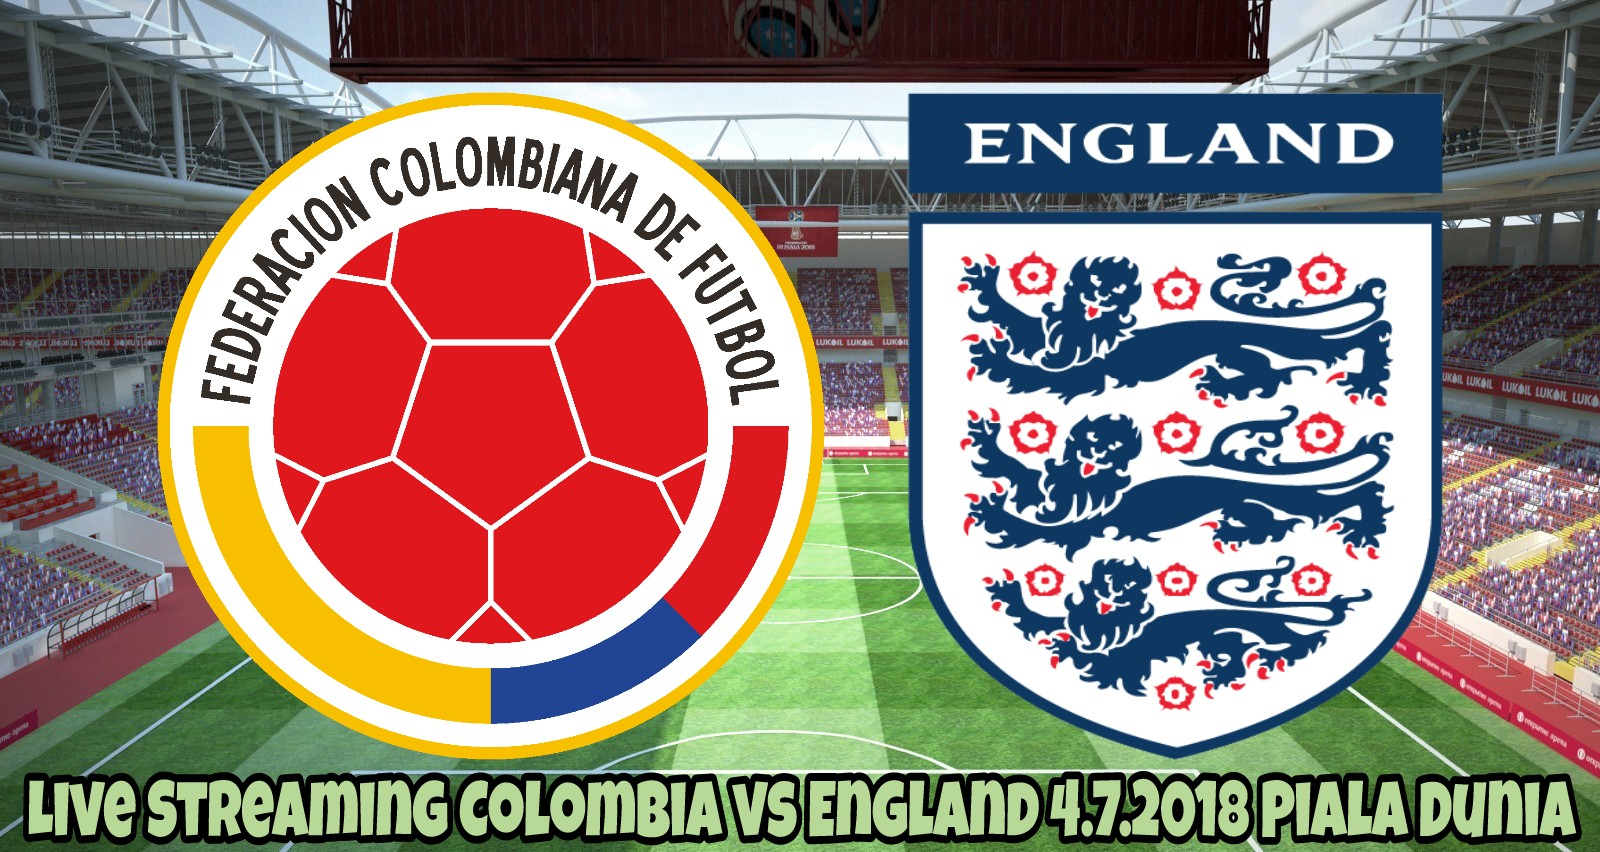 Live Streaming Colombia vs England 4.7.2018 Piala Dunia FIFA